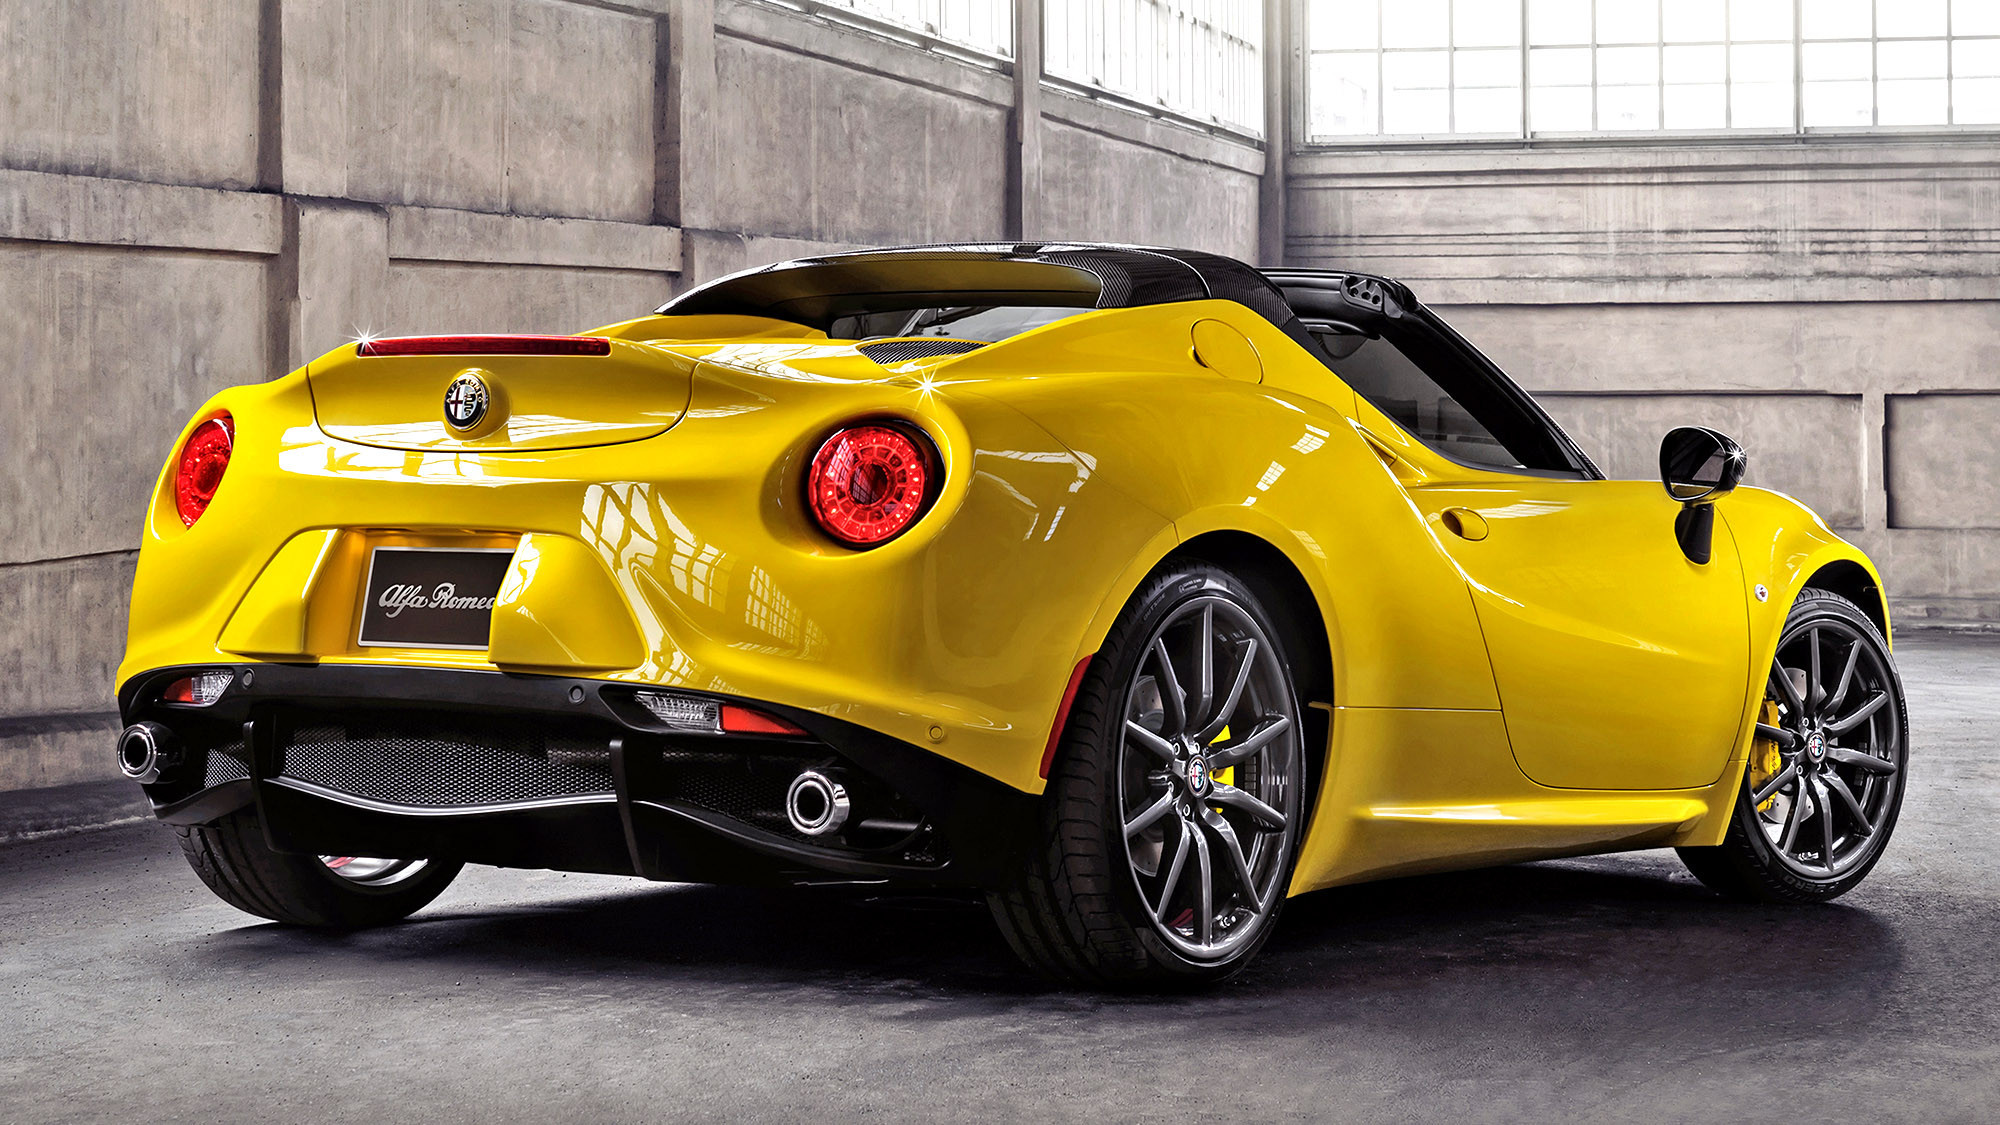 alfa romeo spider 4c html with La Fi Hy Fun Cars Pictures Photogallery on Petra Nemcova together with Auspuff Ausschnittblenden Fuer Duplexanlagen  2952 furthermore La Fi Hy Fun Cars Pictures Photogallery further Default also Tamara Ecclestone.